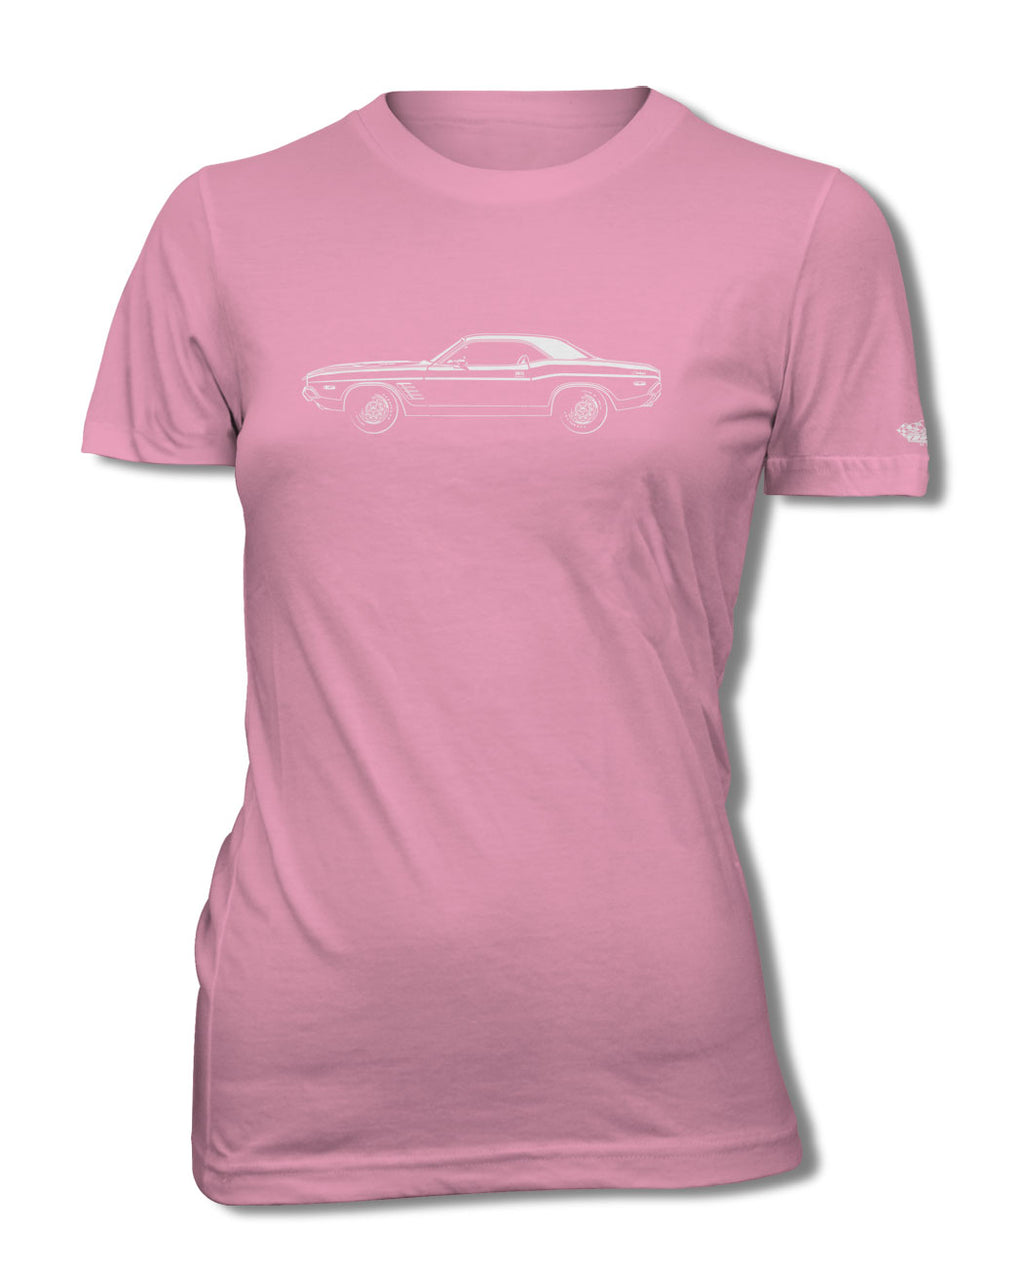 1972 Dodge Challenger Rallye Coupe T-Shirt - Women - Side View